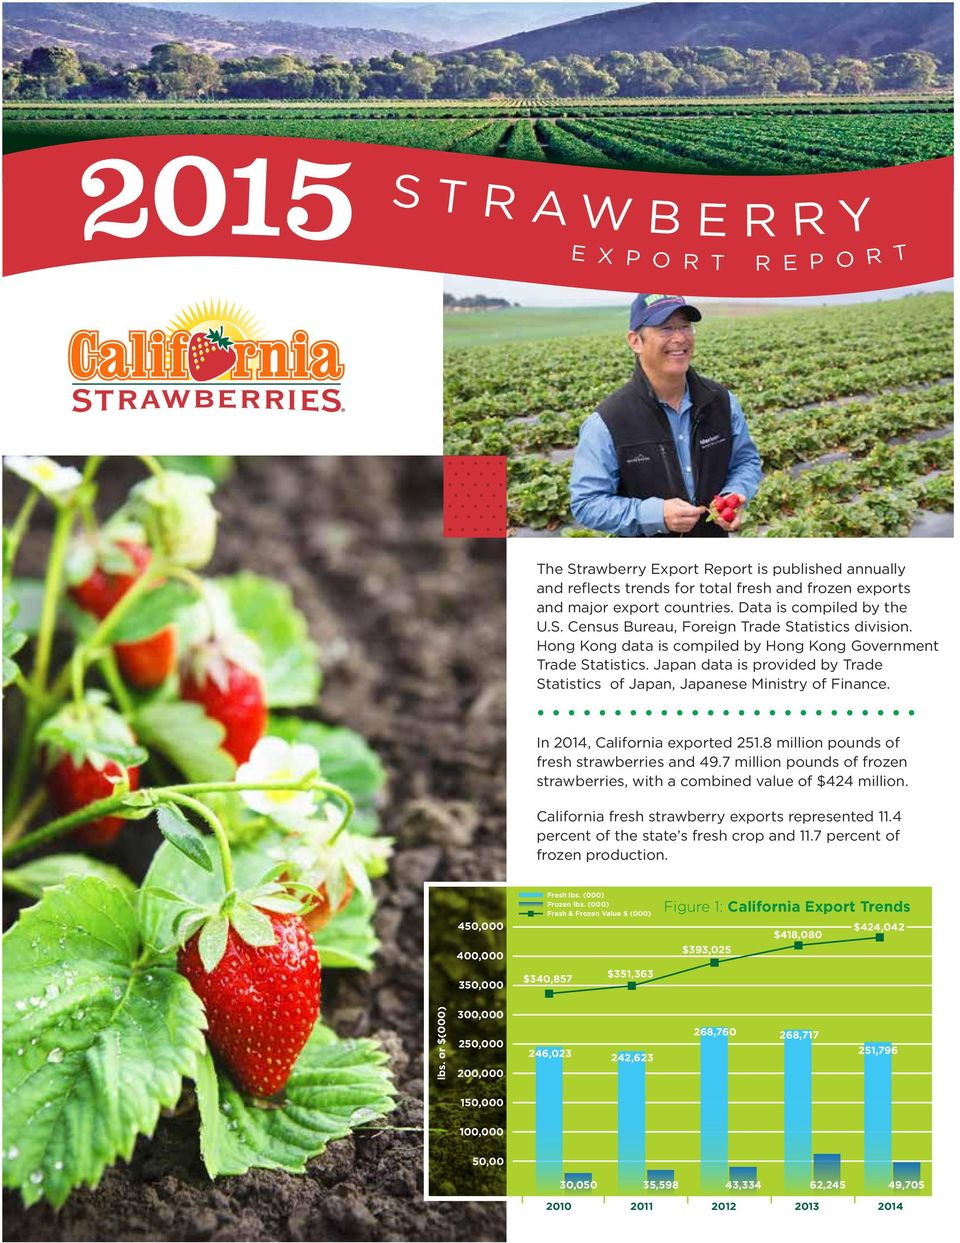 8 million pounds of fresh strawberries and 49.7 million pounds of frozen strawberries, with a combined value of $424 million. California fresh strawberry exports represented 11.